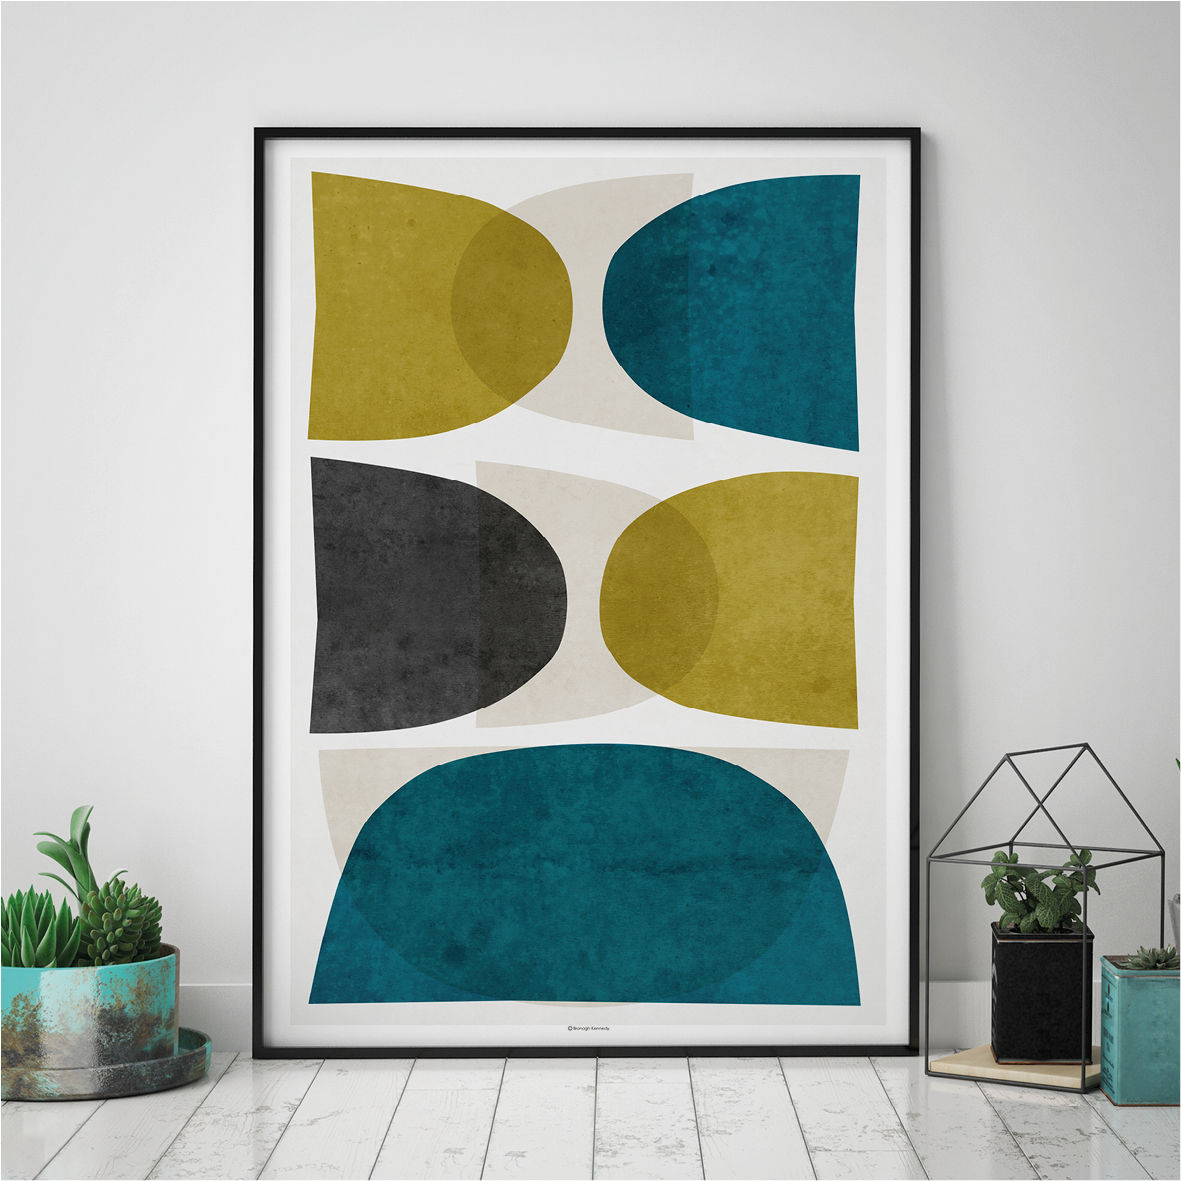 Minimalist wall art abstract art prints fine art for Modern minimalist wall art